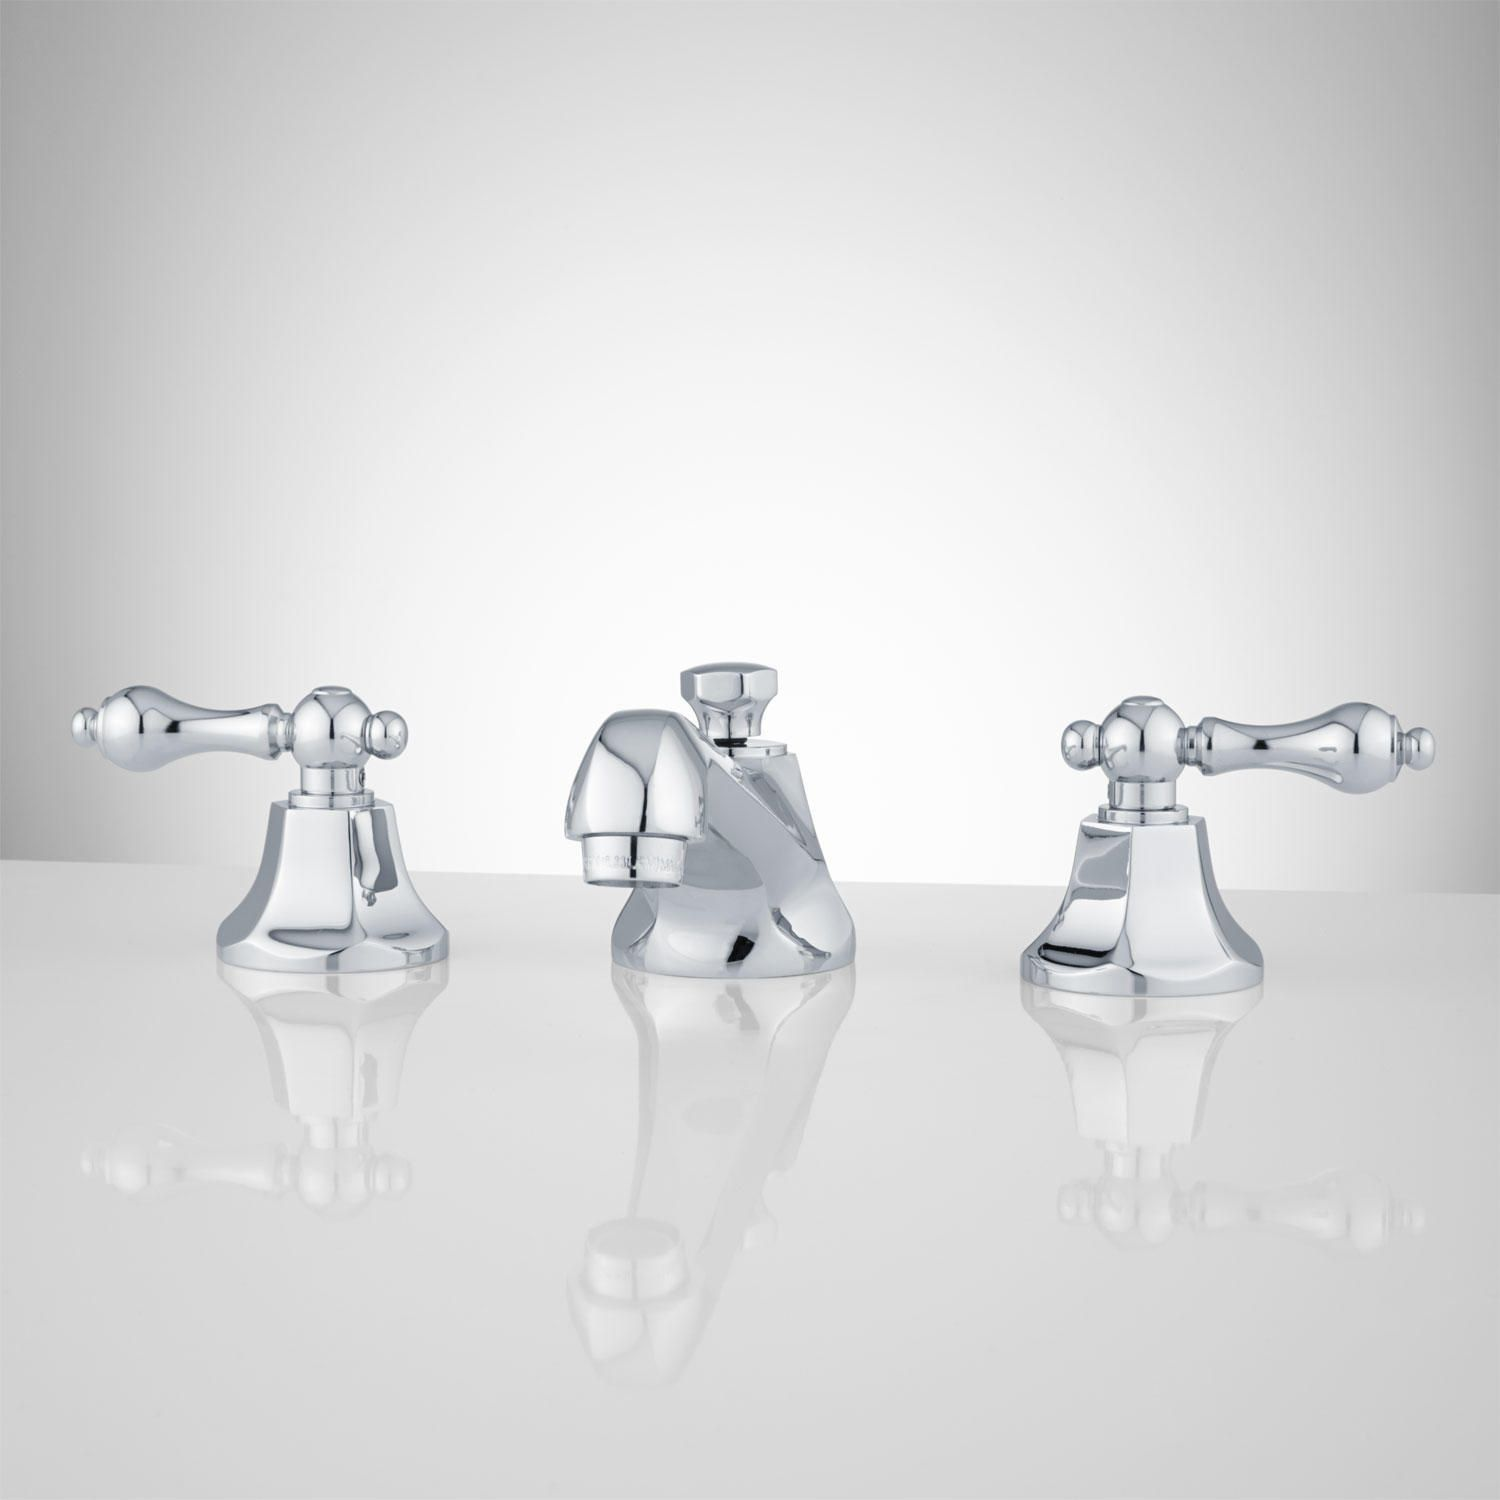 Awesome Bathroom Faucets New York City | Faucet, Minimalist bathroom ...